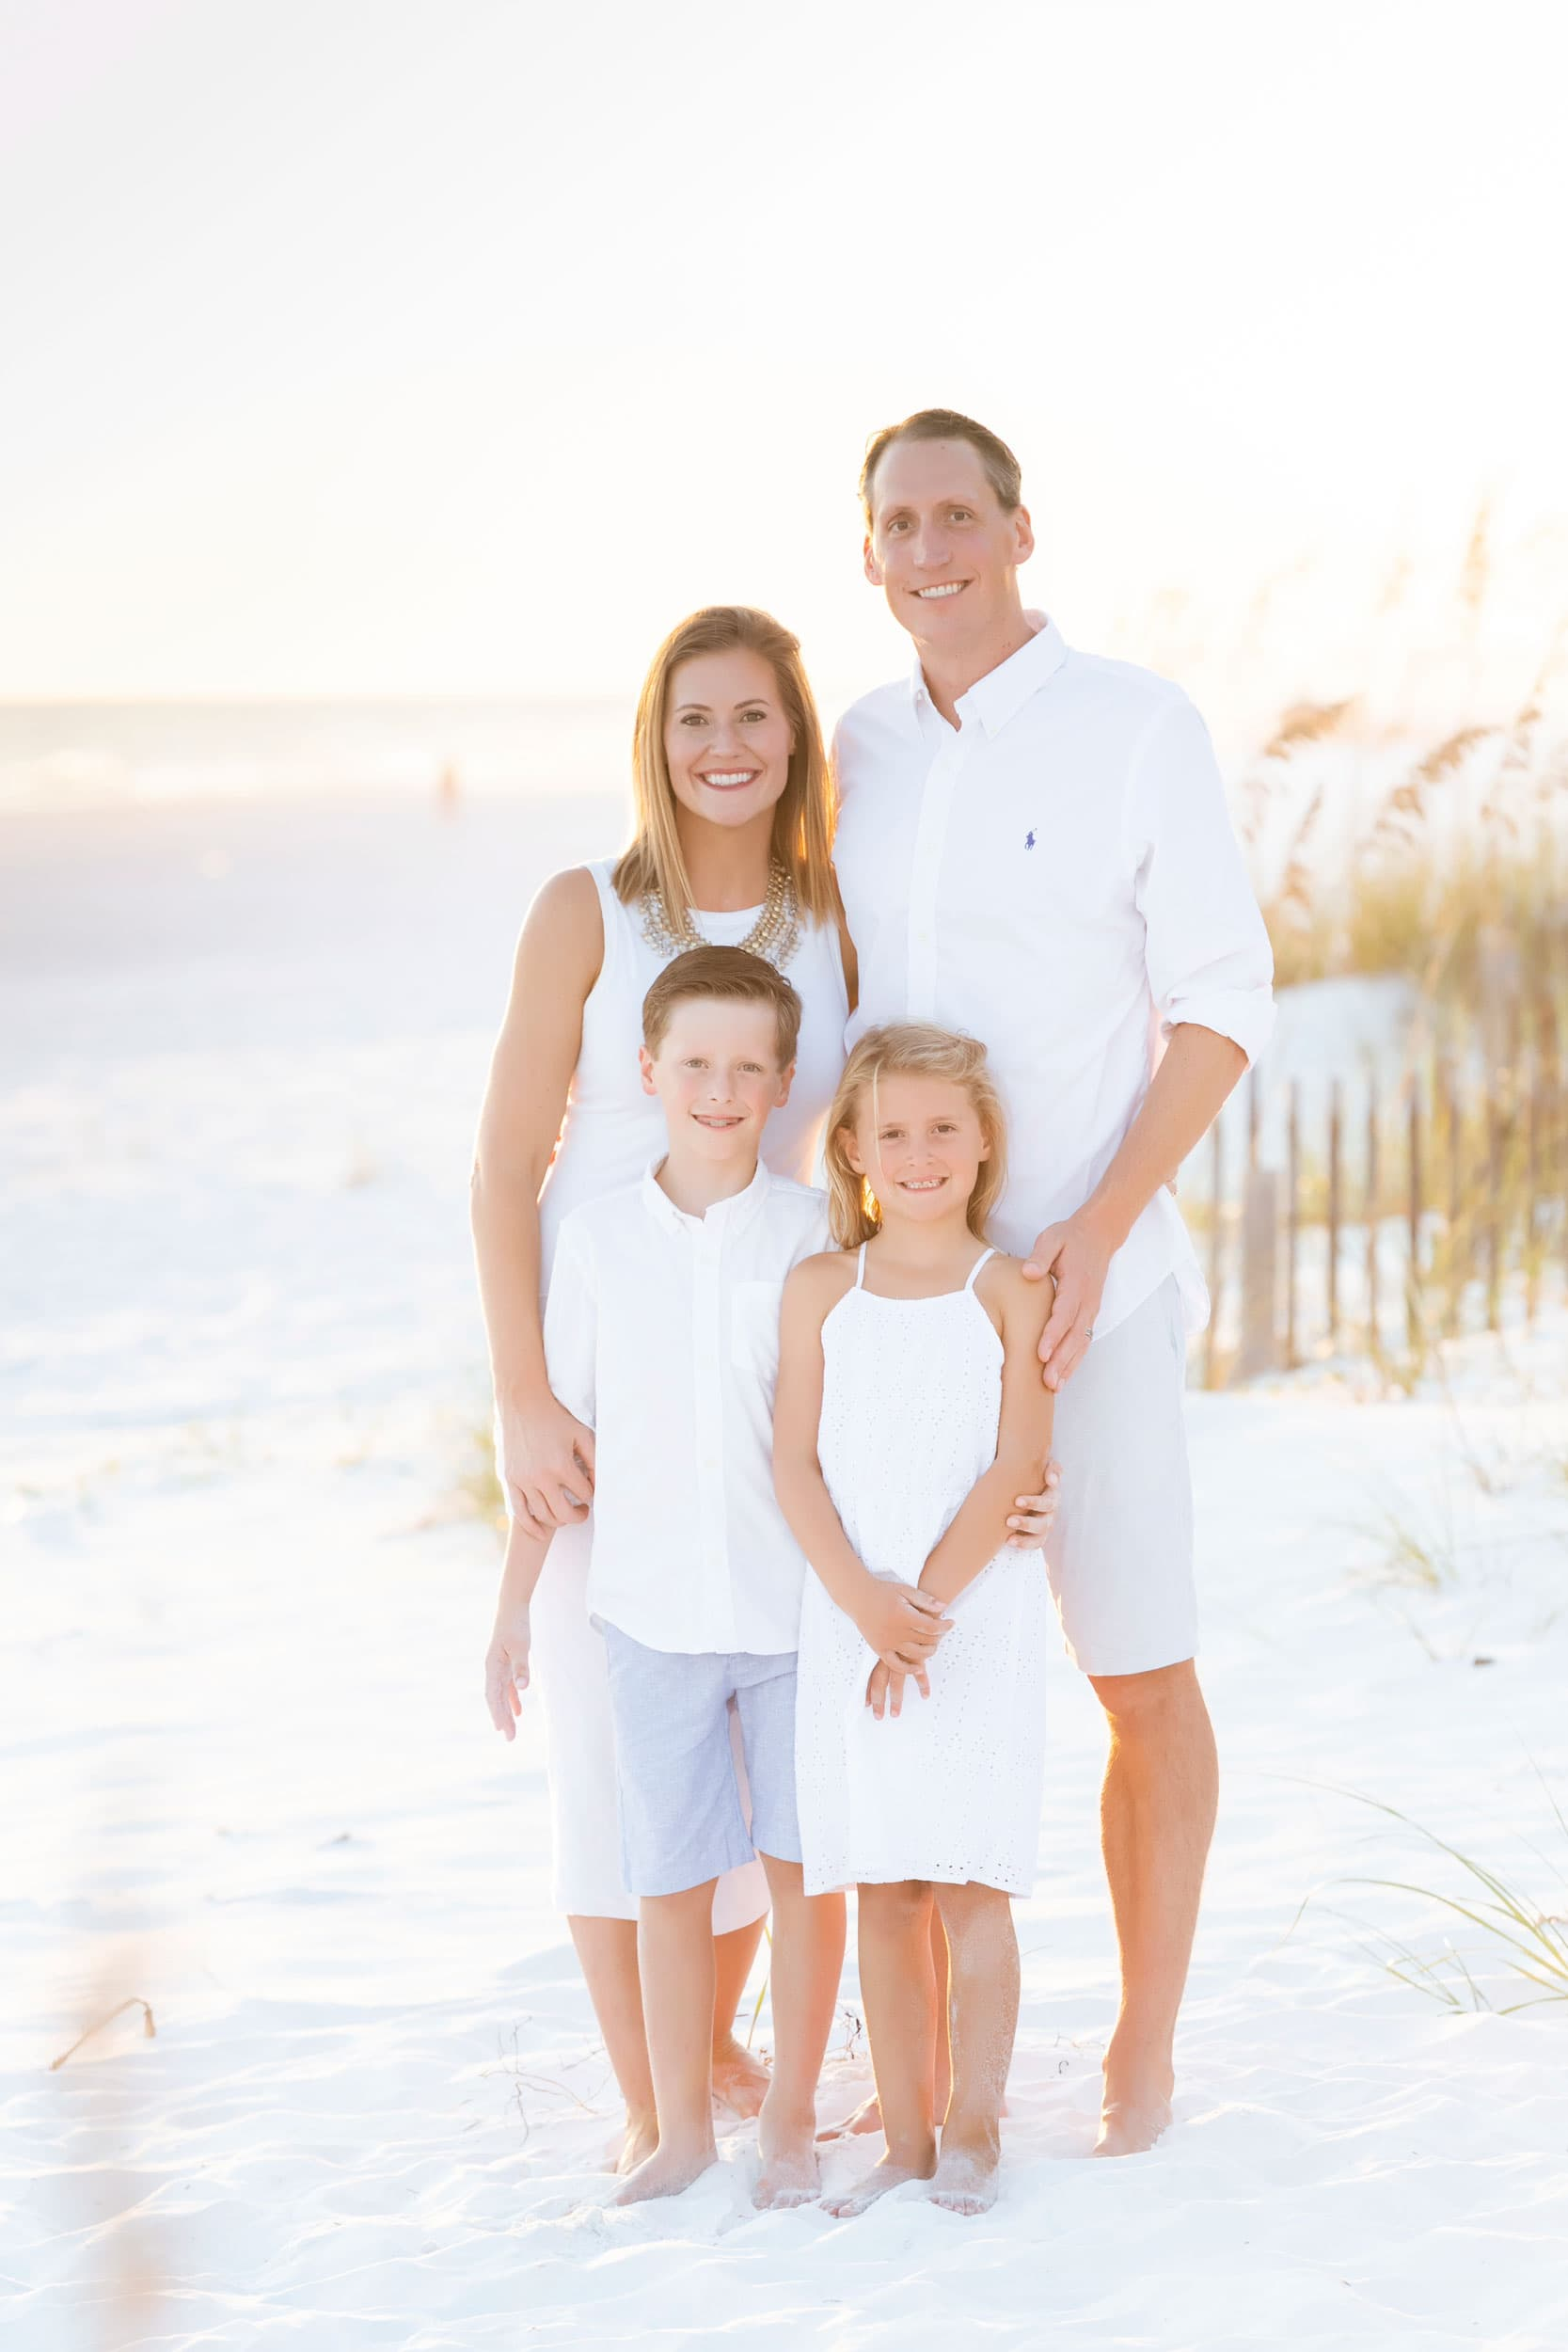 watercolor beach photographer captures image of vacationing family